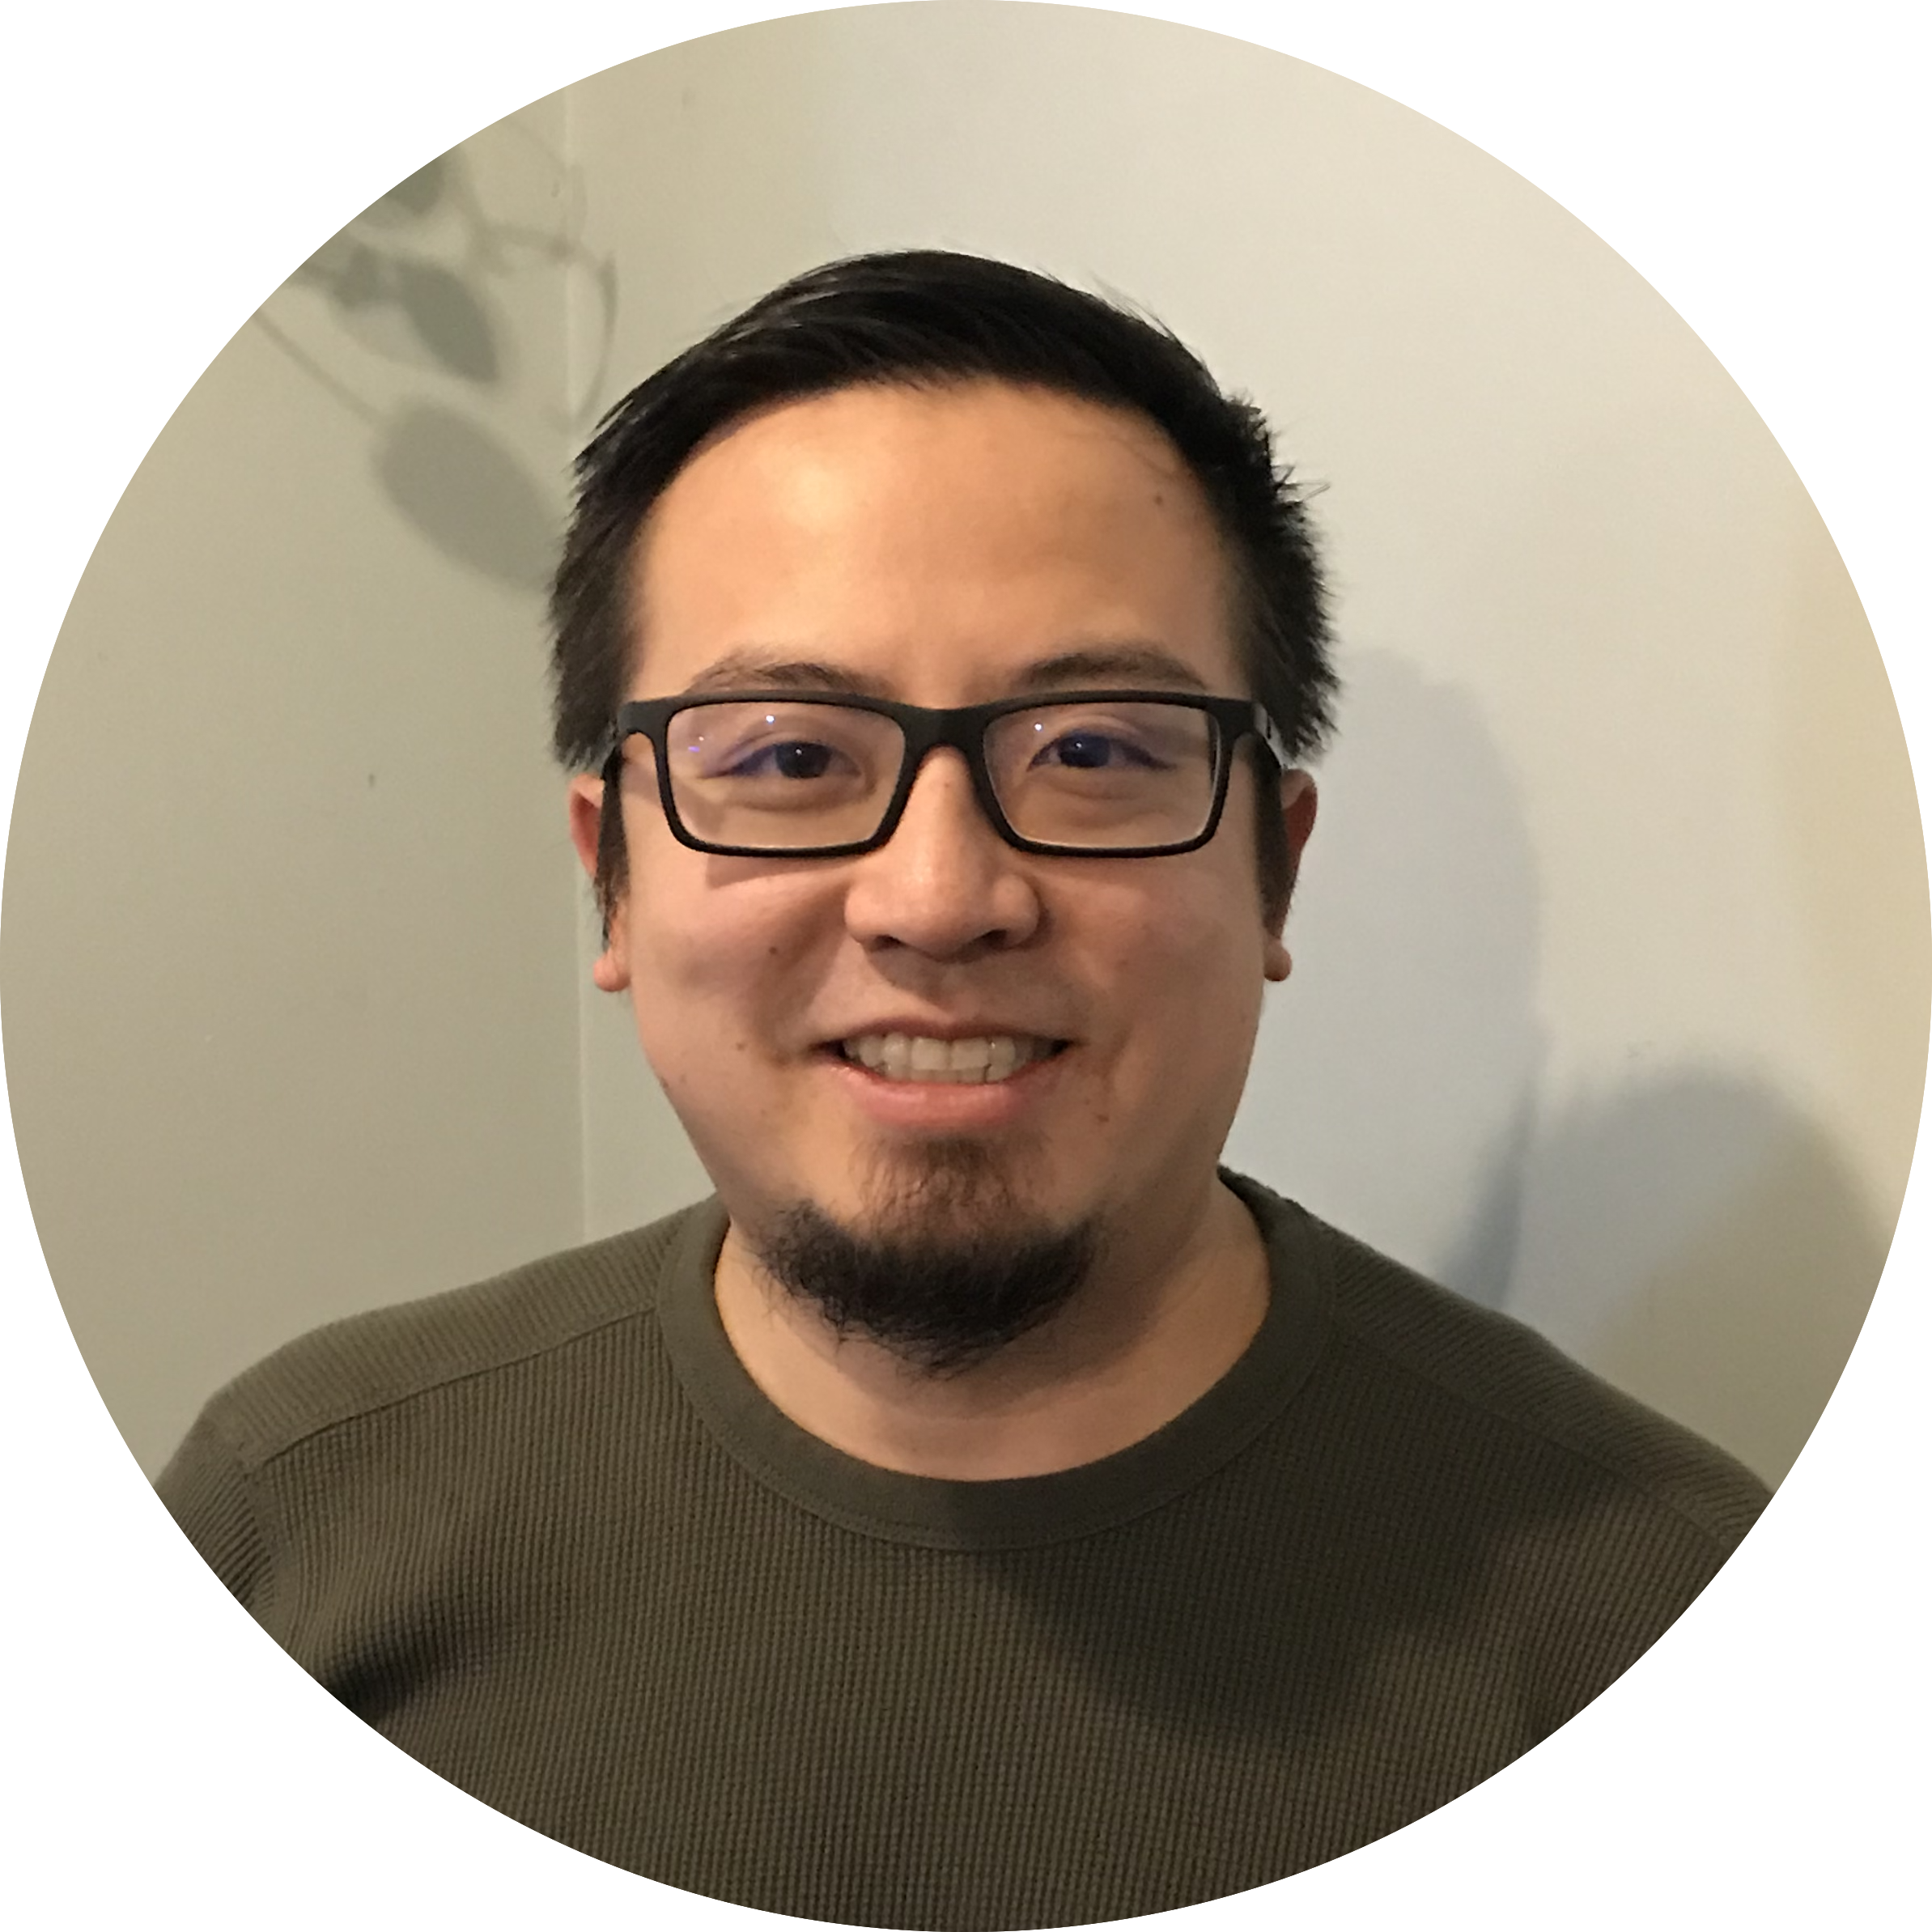 Bernard Tam is Lead Pastor of  The Living Room Church  (a previous New Venture!) which is a hybrid house church community situated in Midtown Toronto.